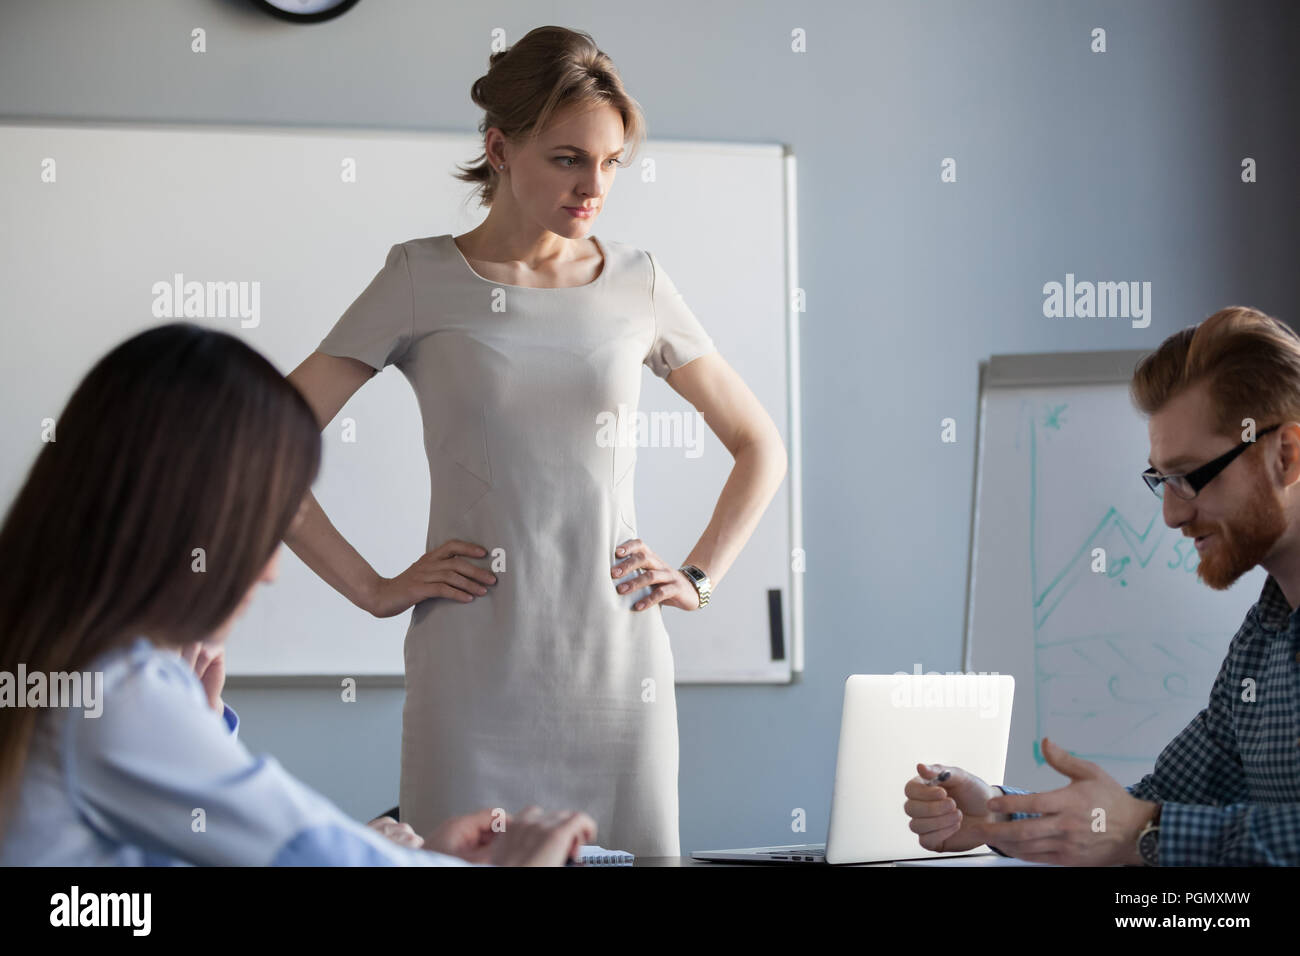 Angry businesswoman waiting for worker explanation of failure - Stock Image